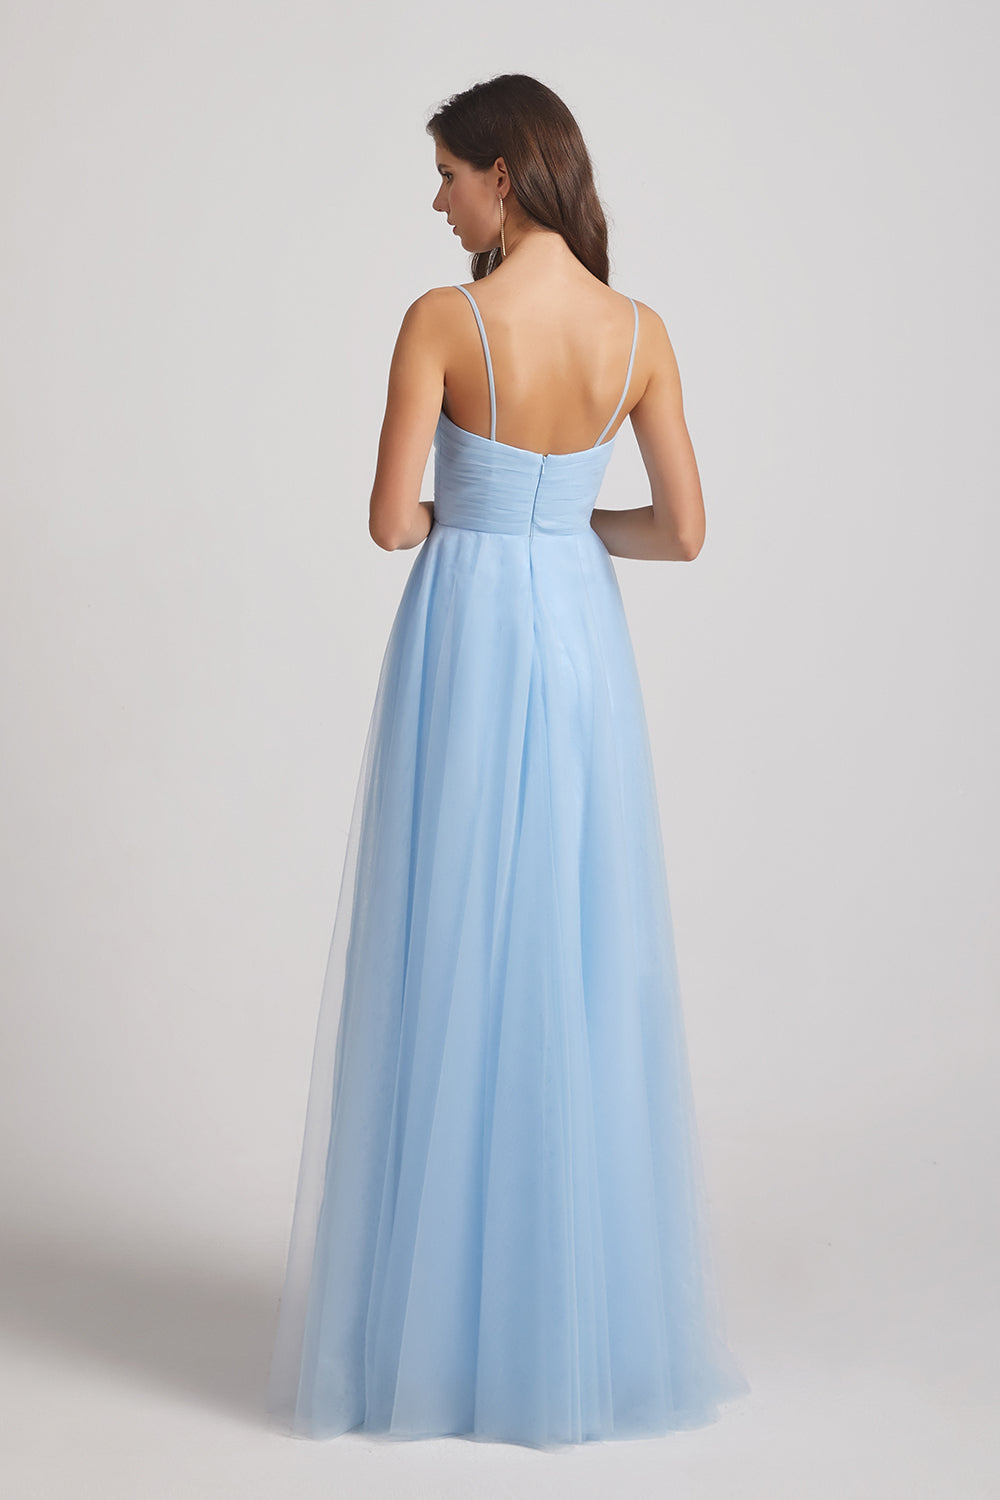 open back zipper-up bridesmaids gown